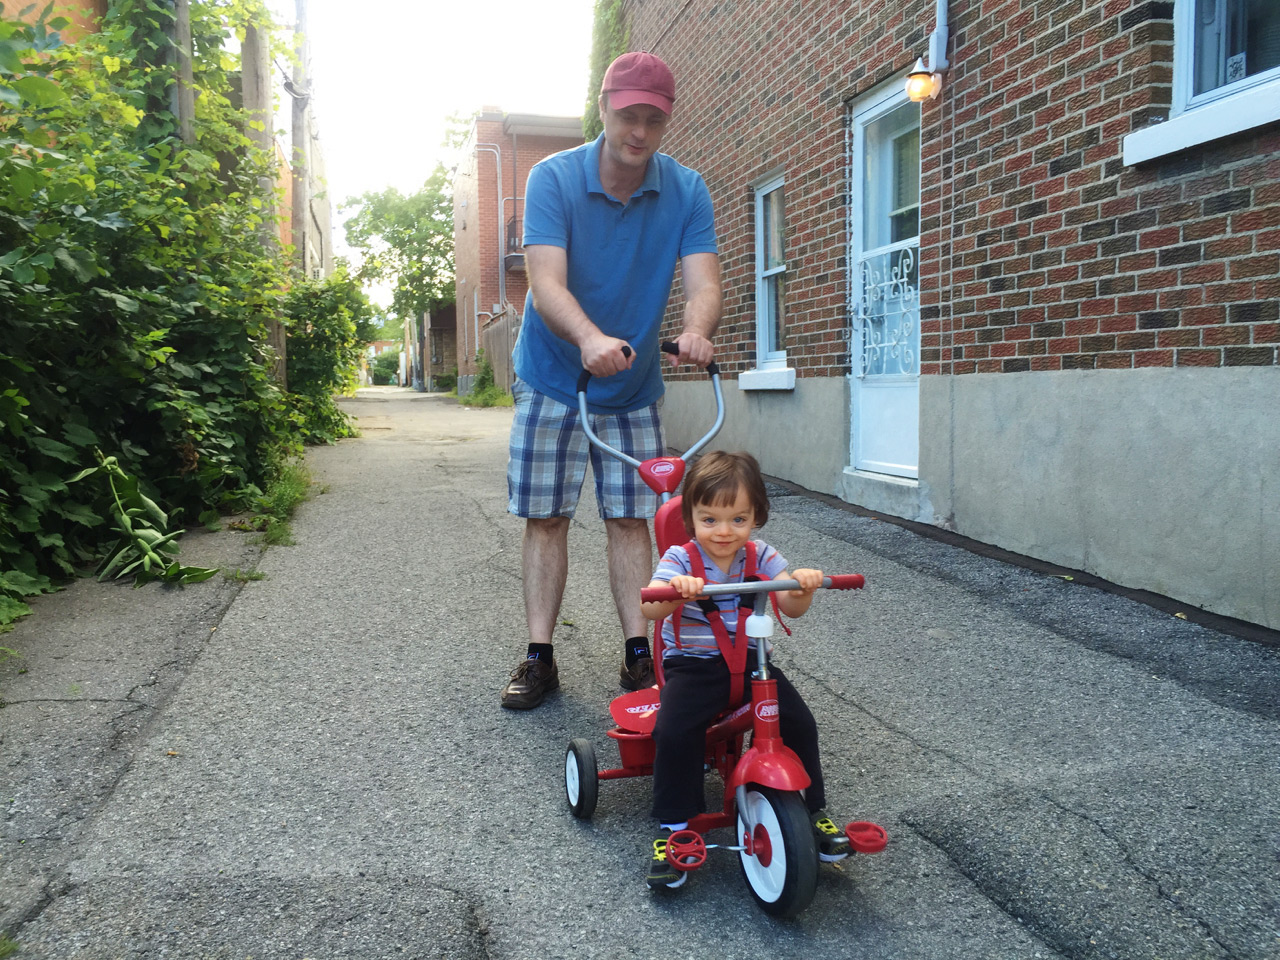 Hubby and Boo on his trike